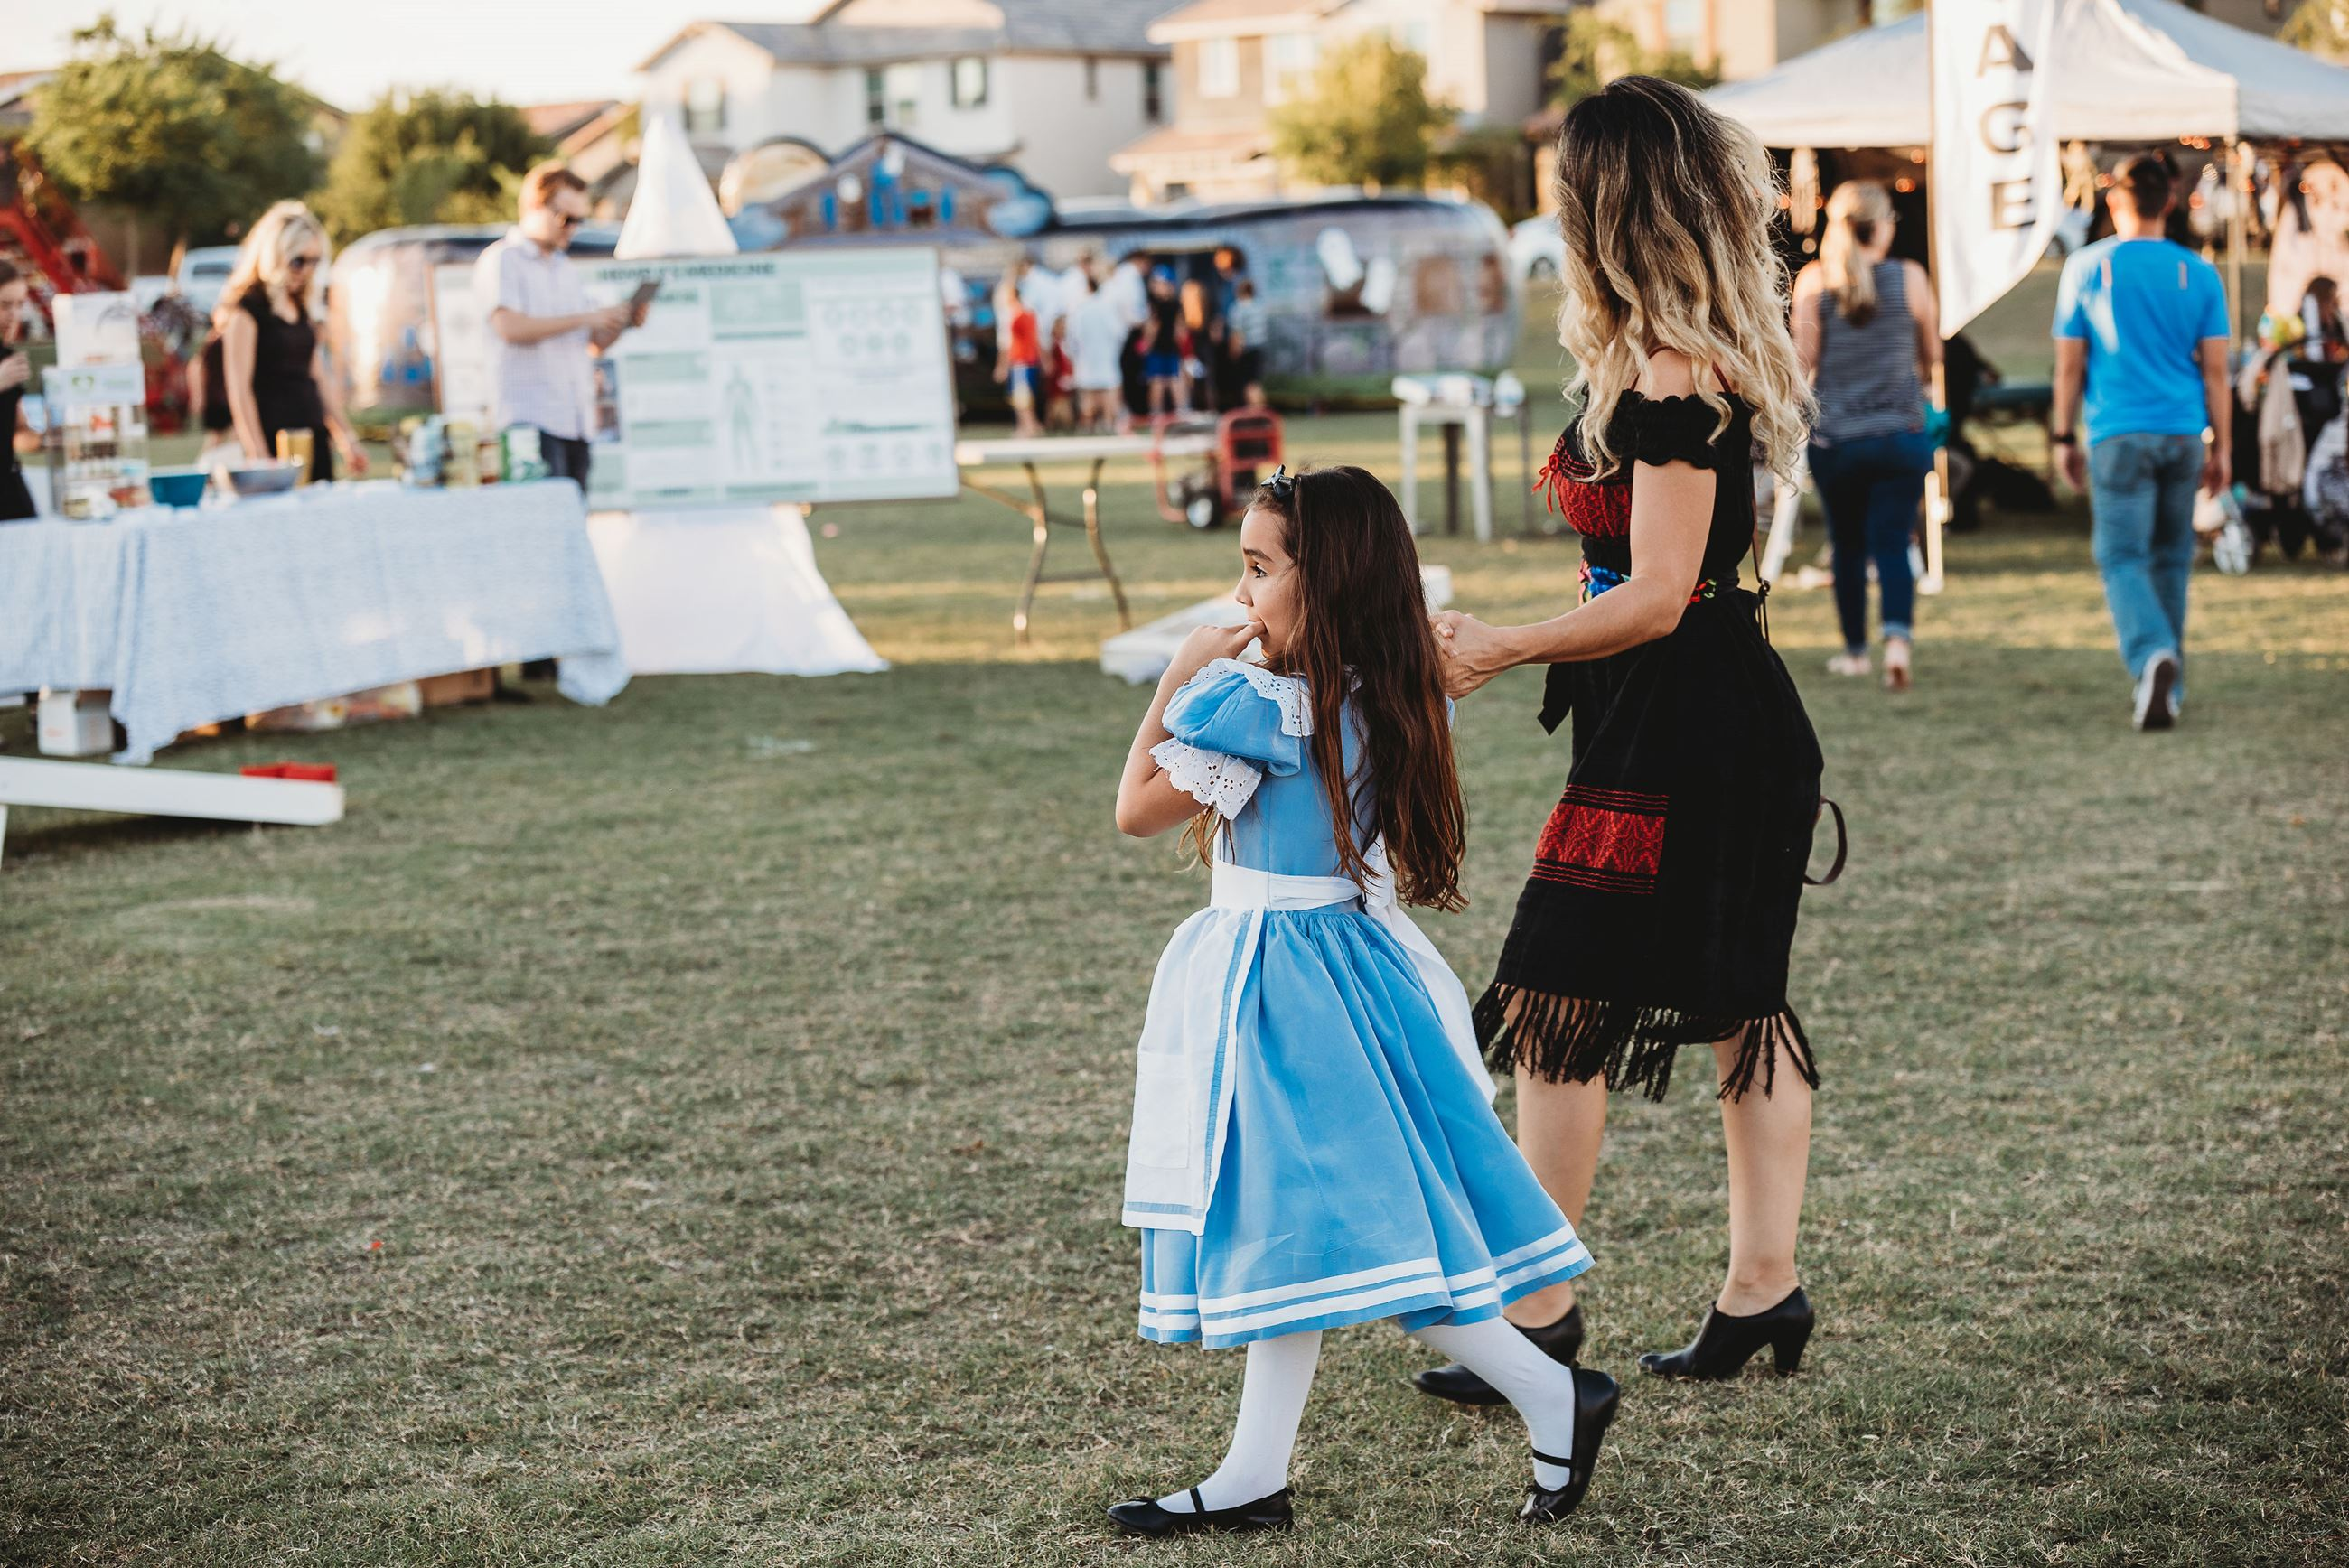 Little Girl Dressed as Alice from Alice in Wonderland with Her Mother